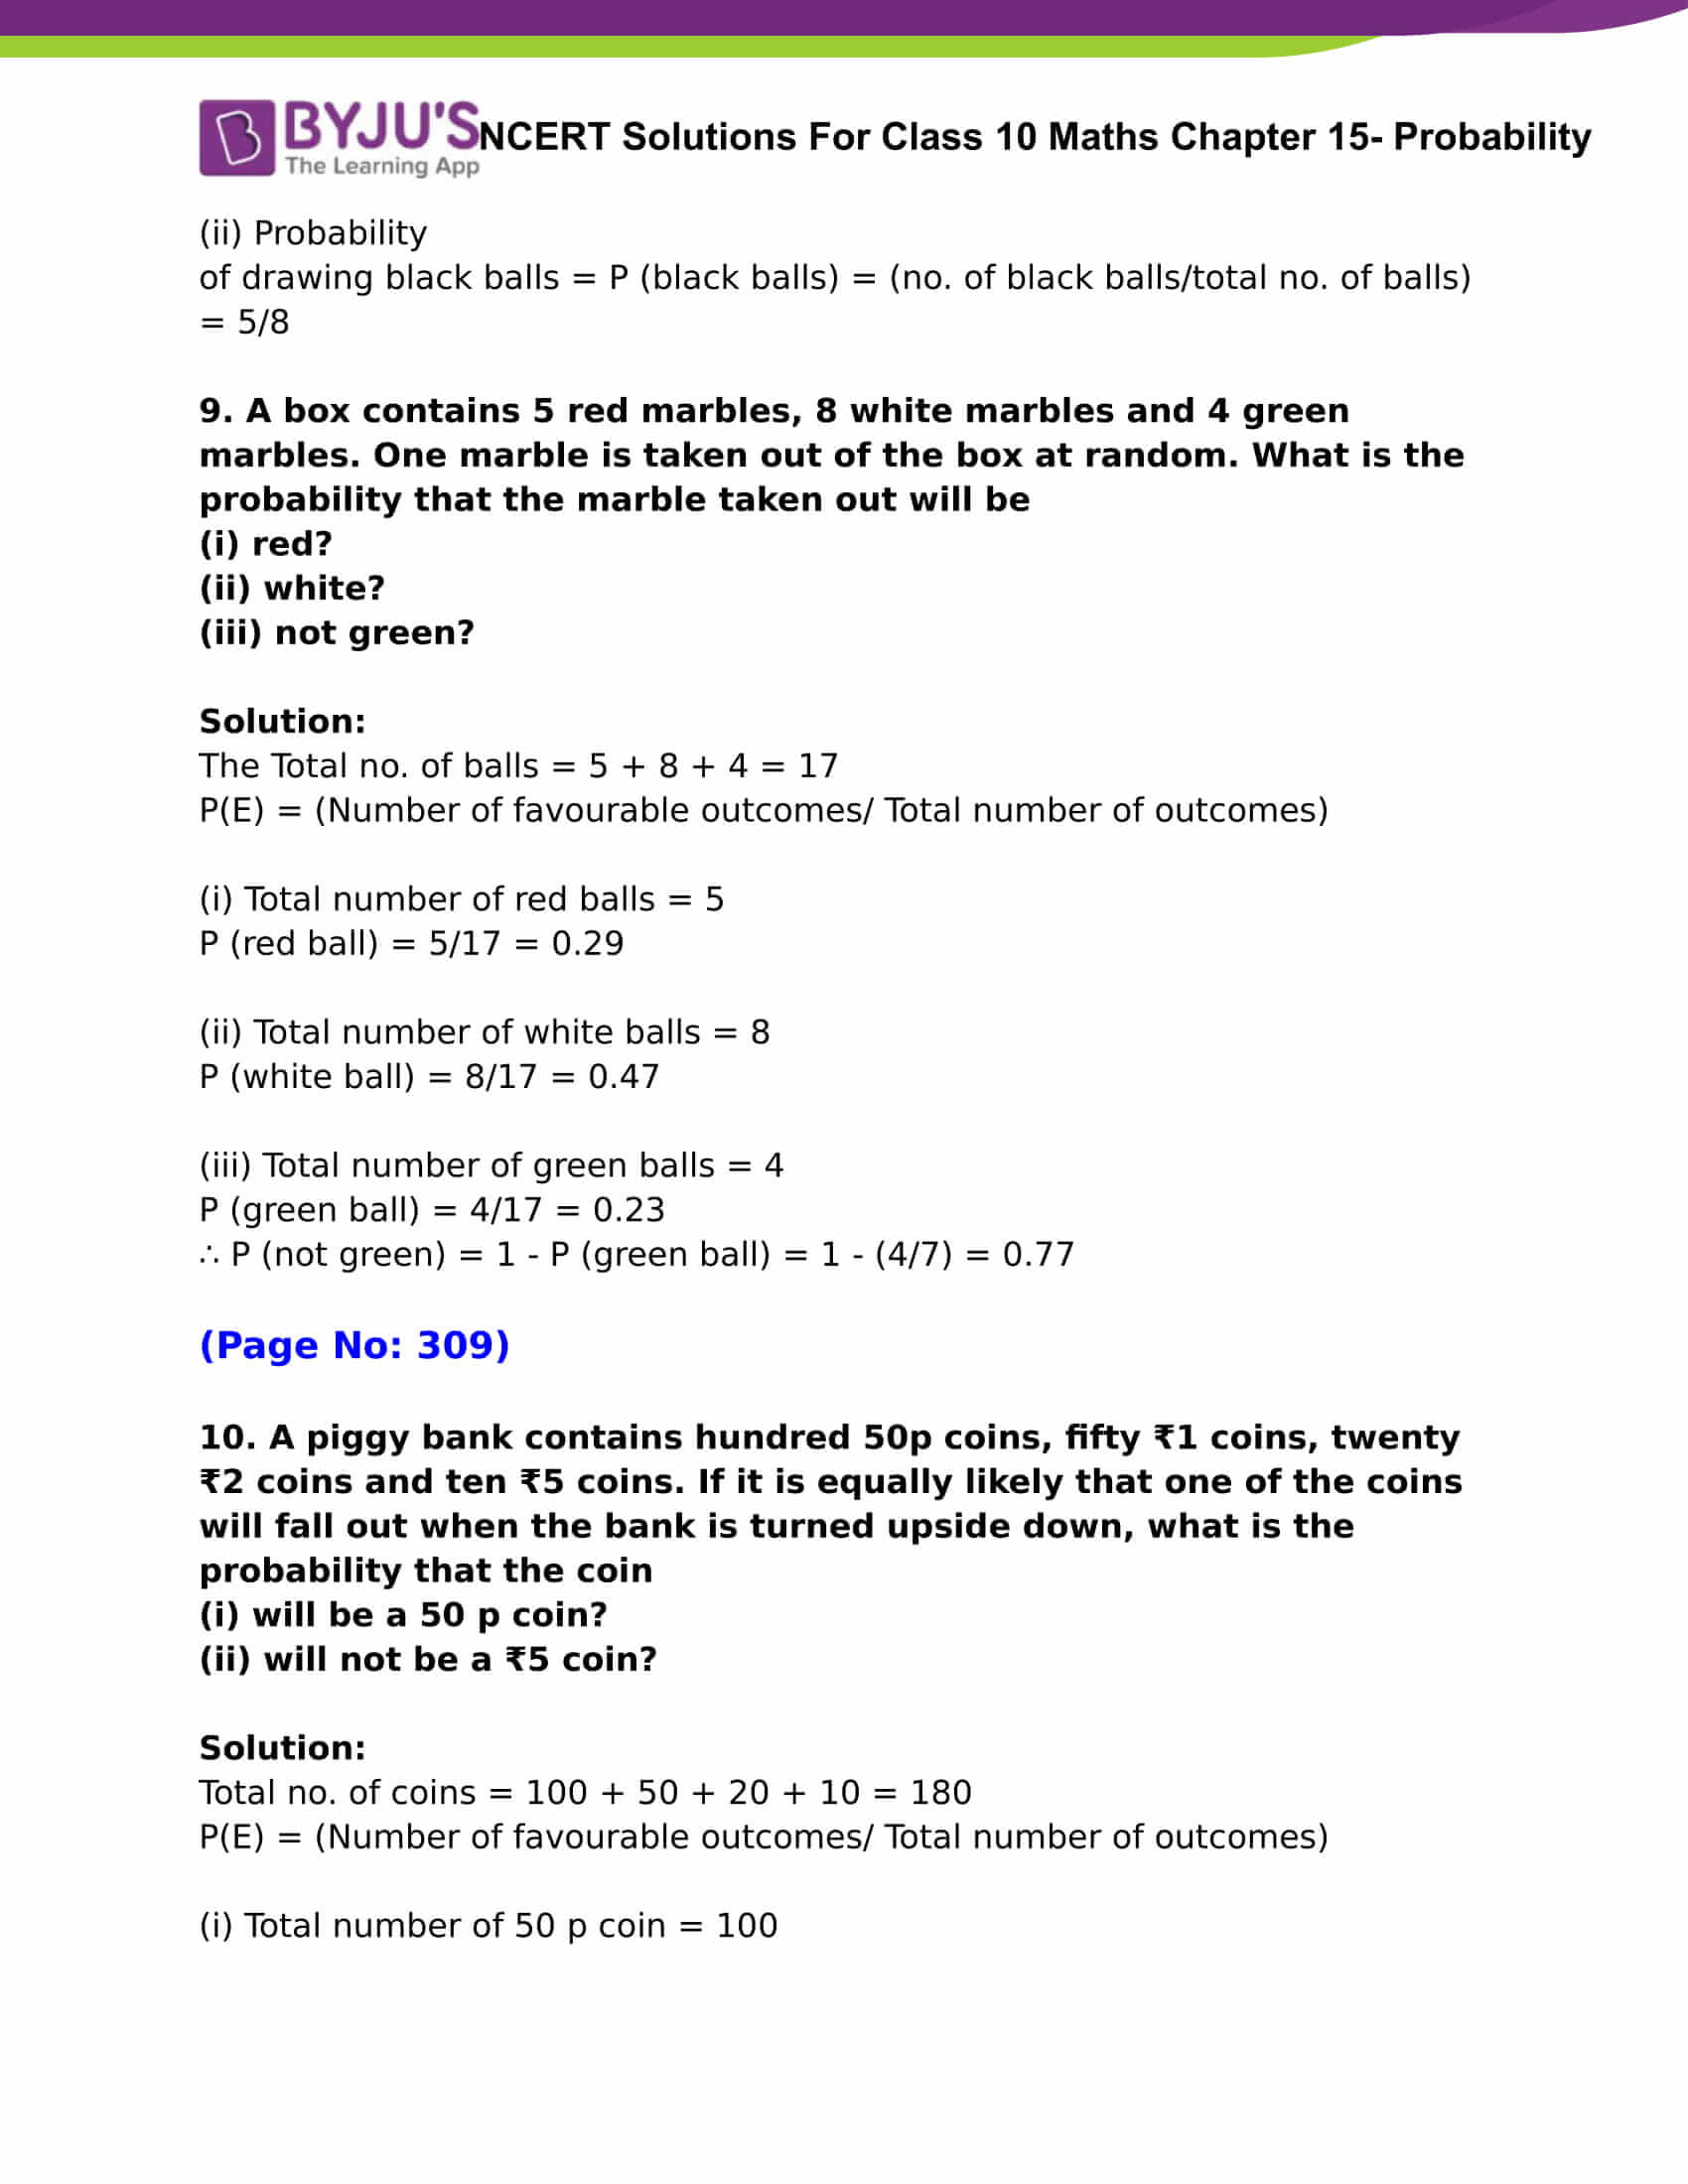 NCERT Solutions For Class 10 Maths Chapter 15 Probability Part 04